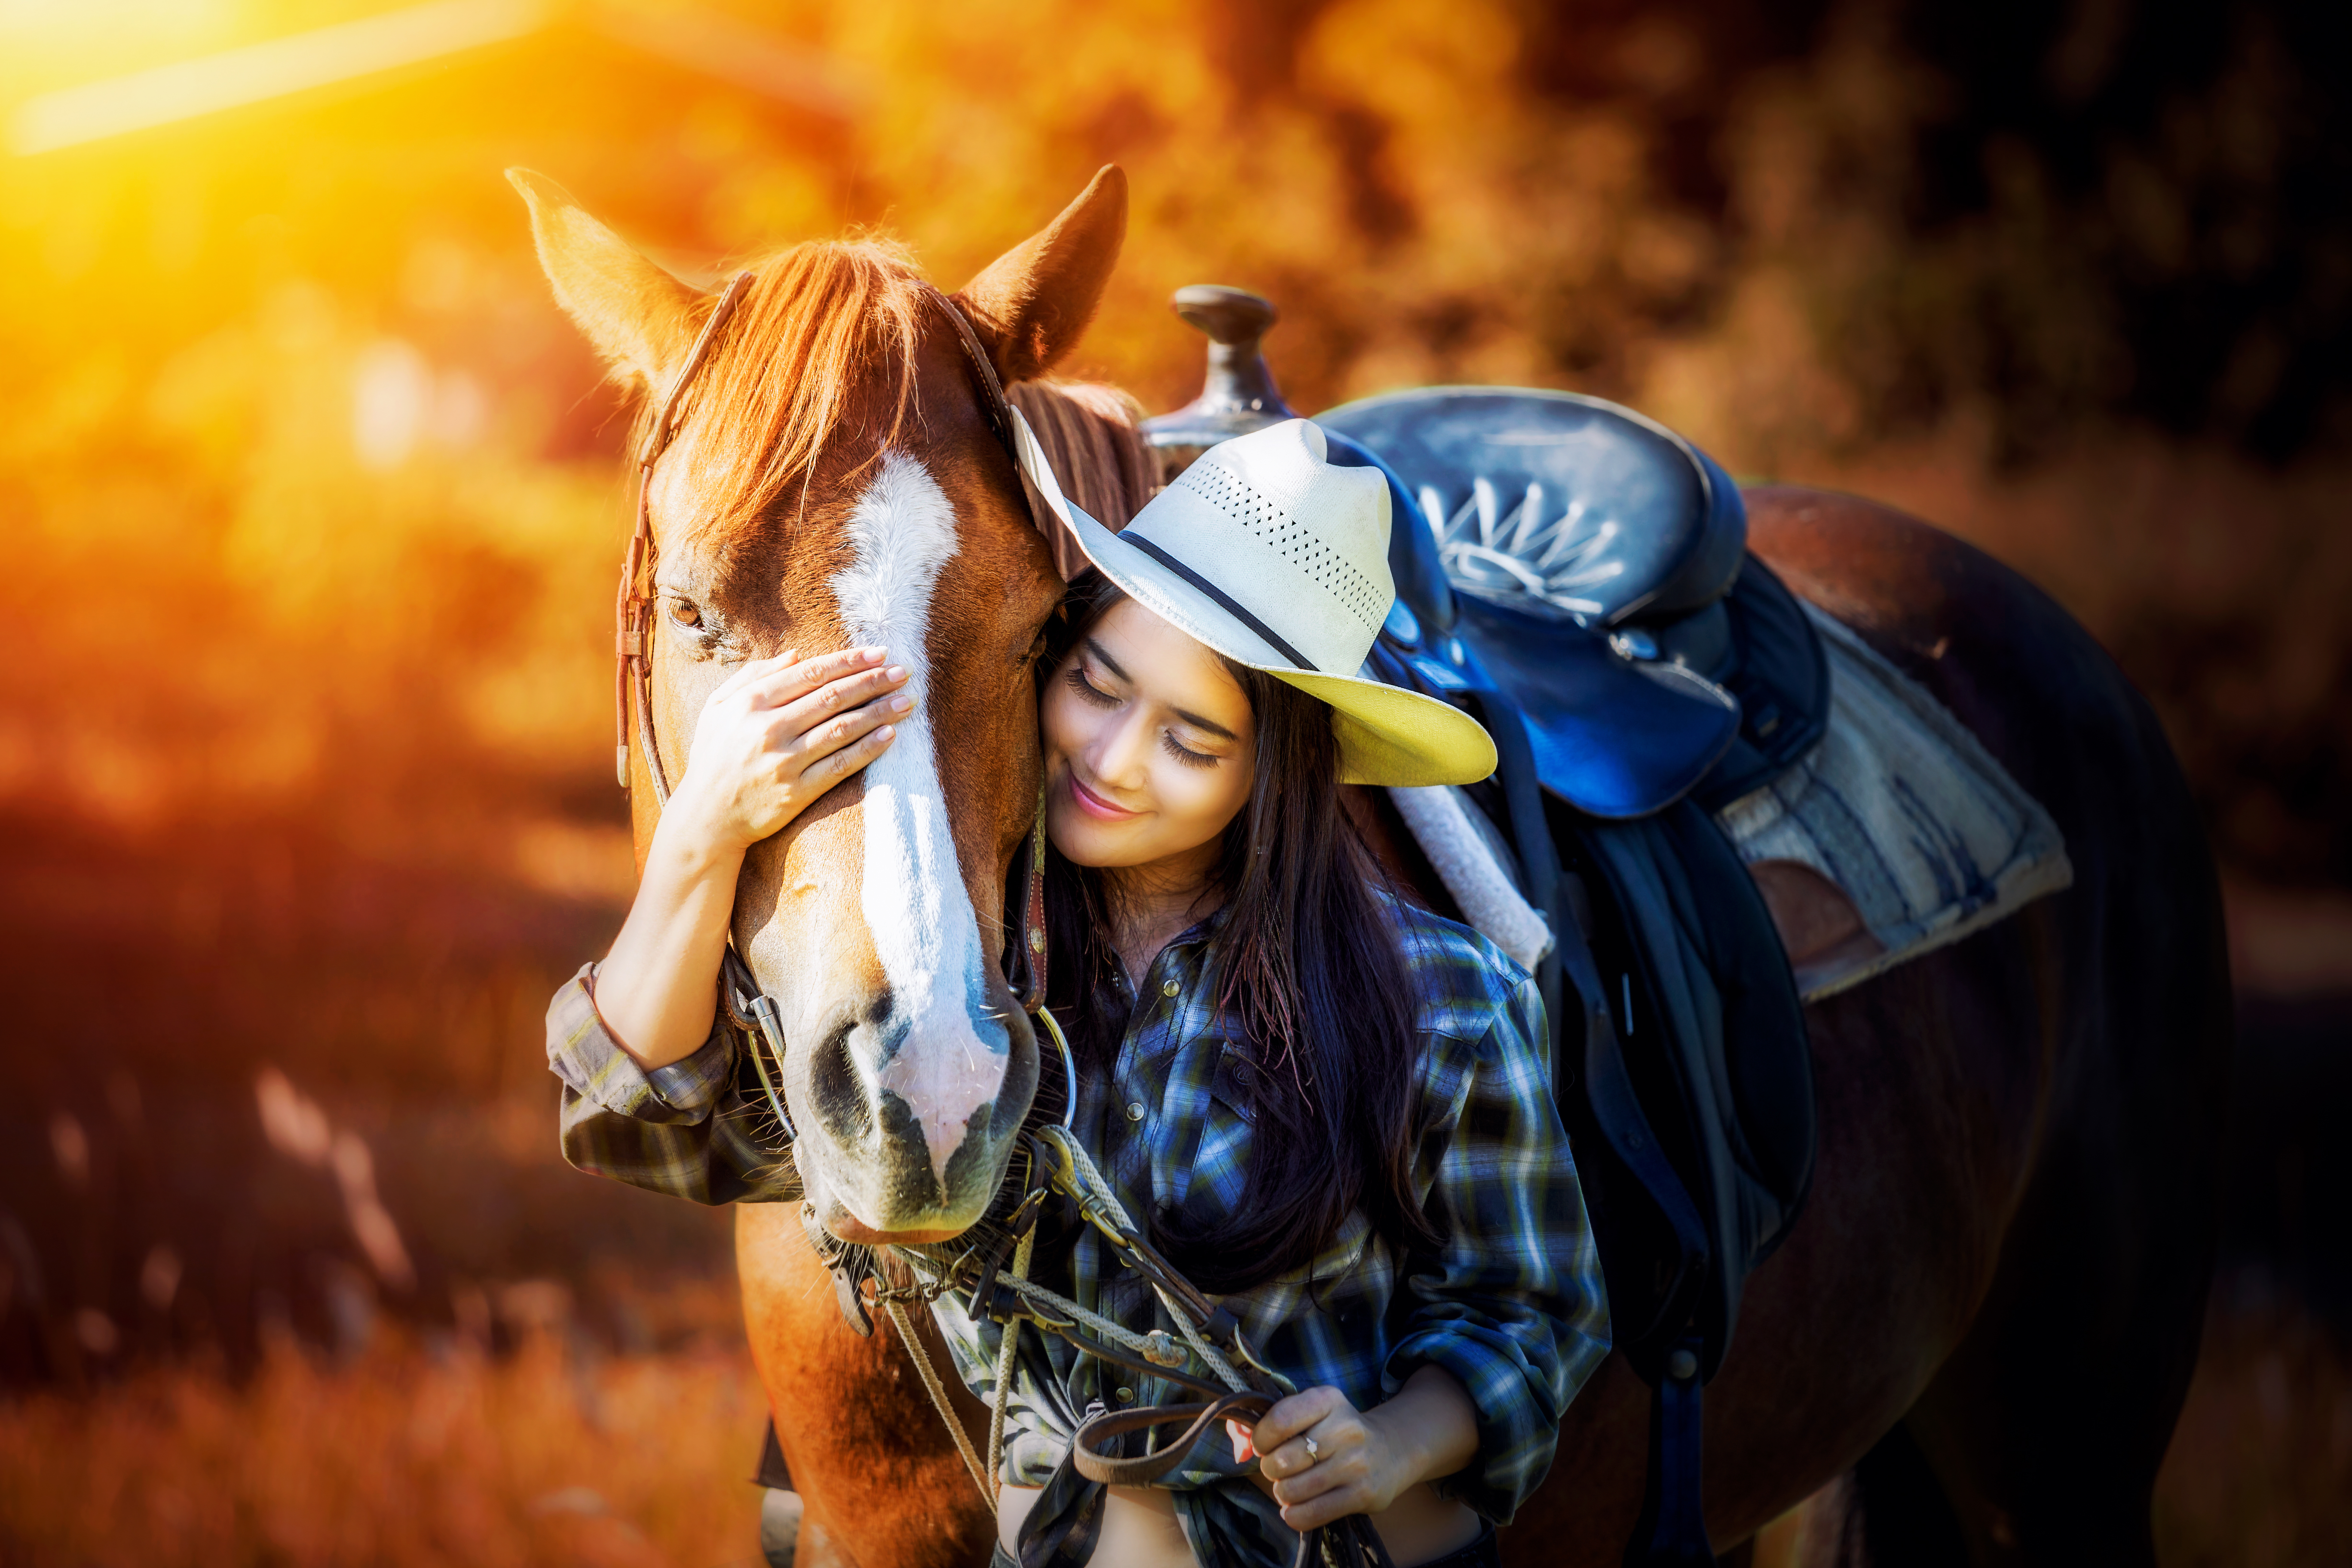 Consumers Want the Workhorse, Not the Unicorn – Grounded Growth